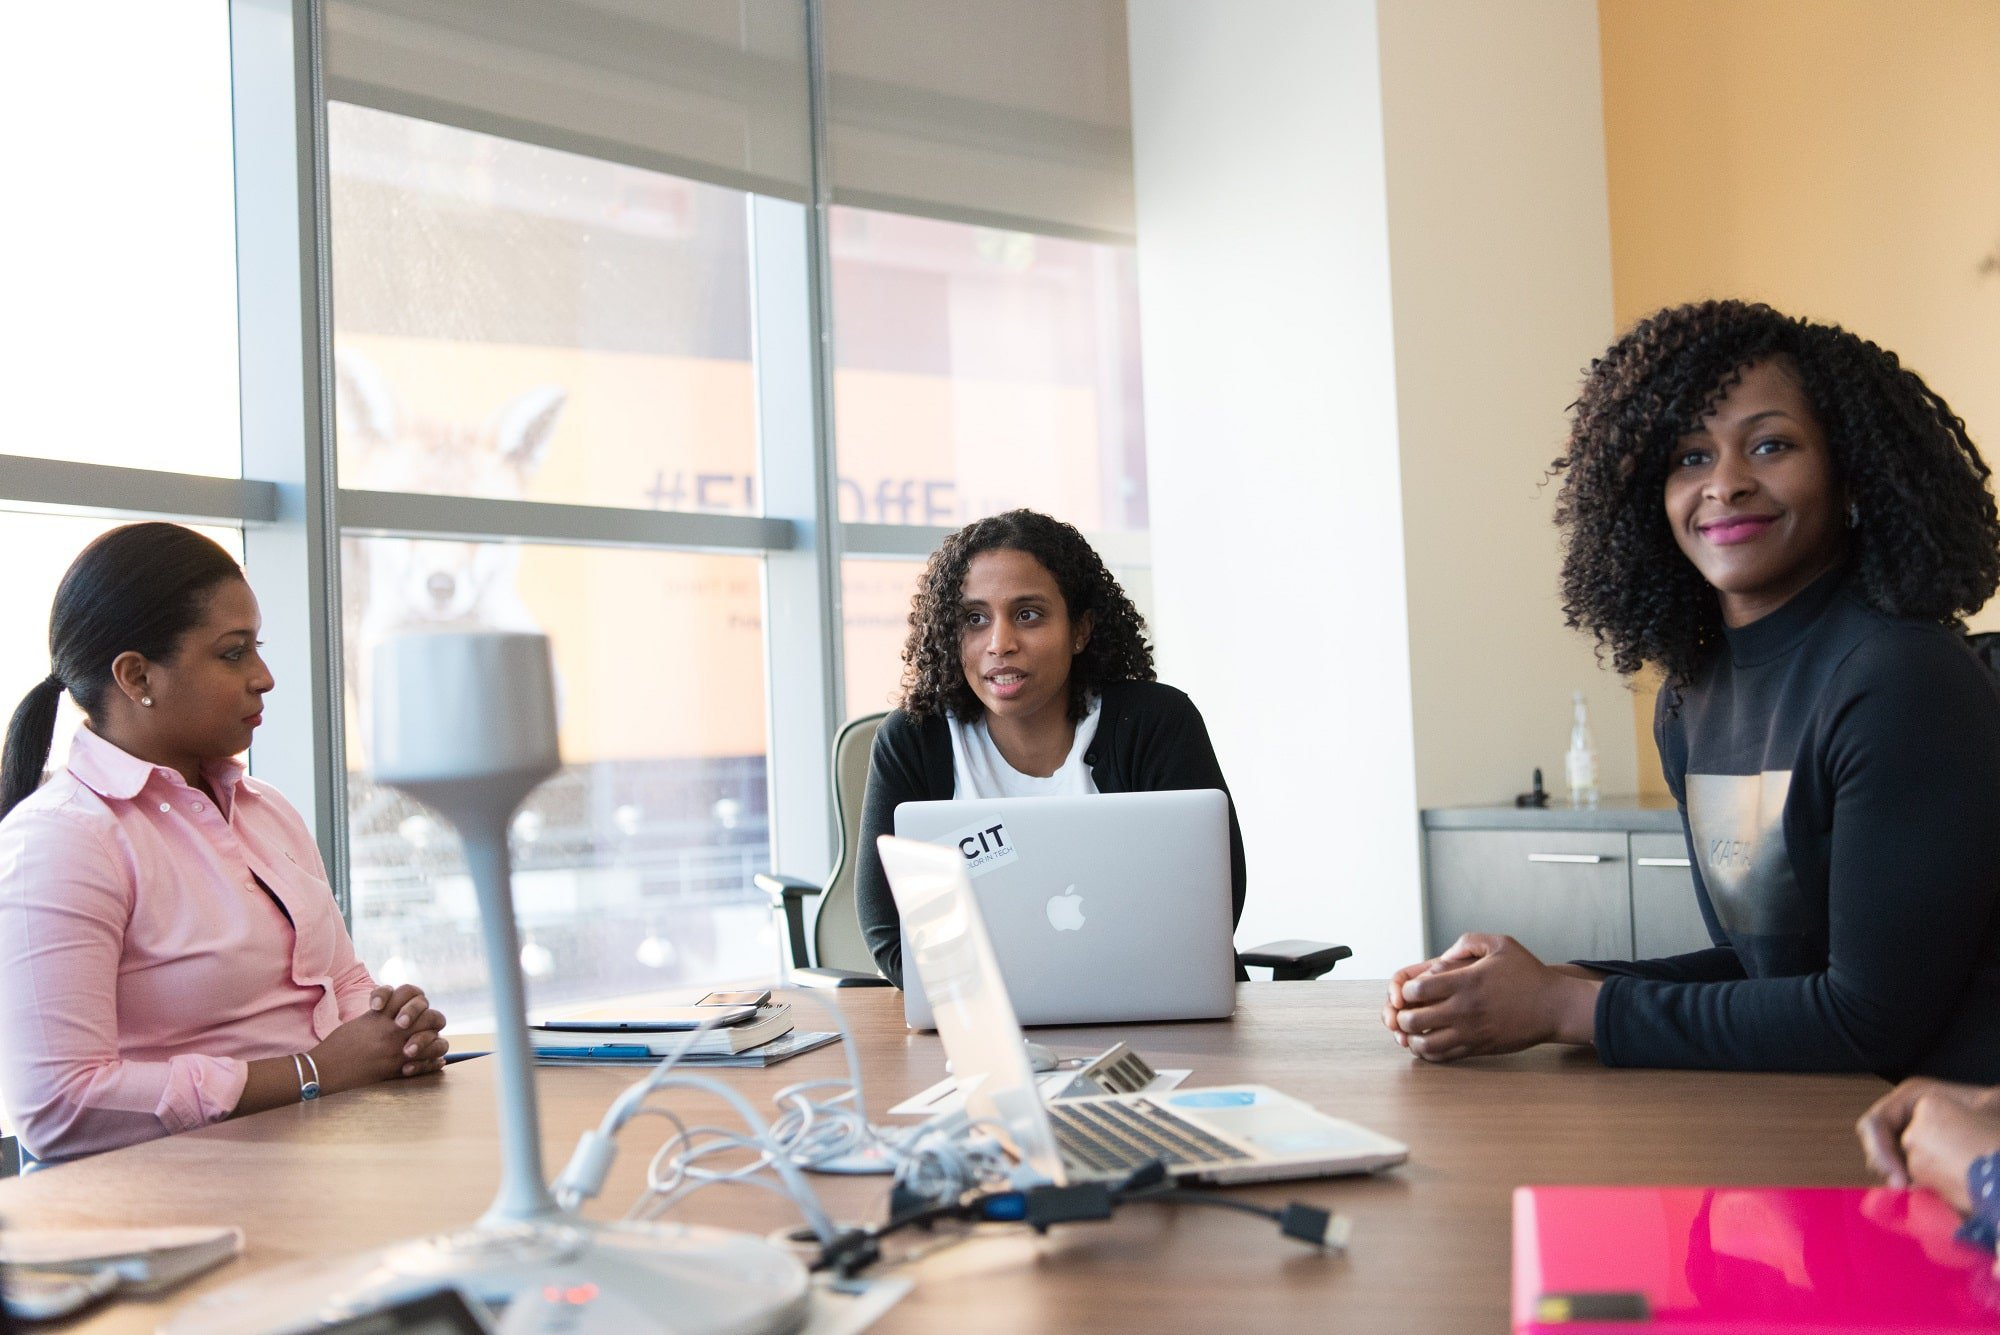 Three businesswomen sit at a conference table